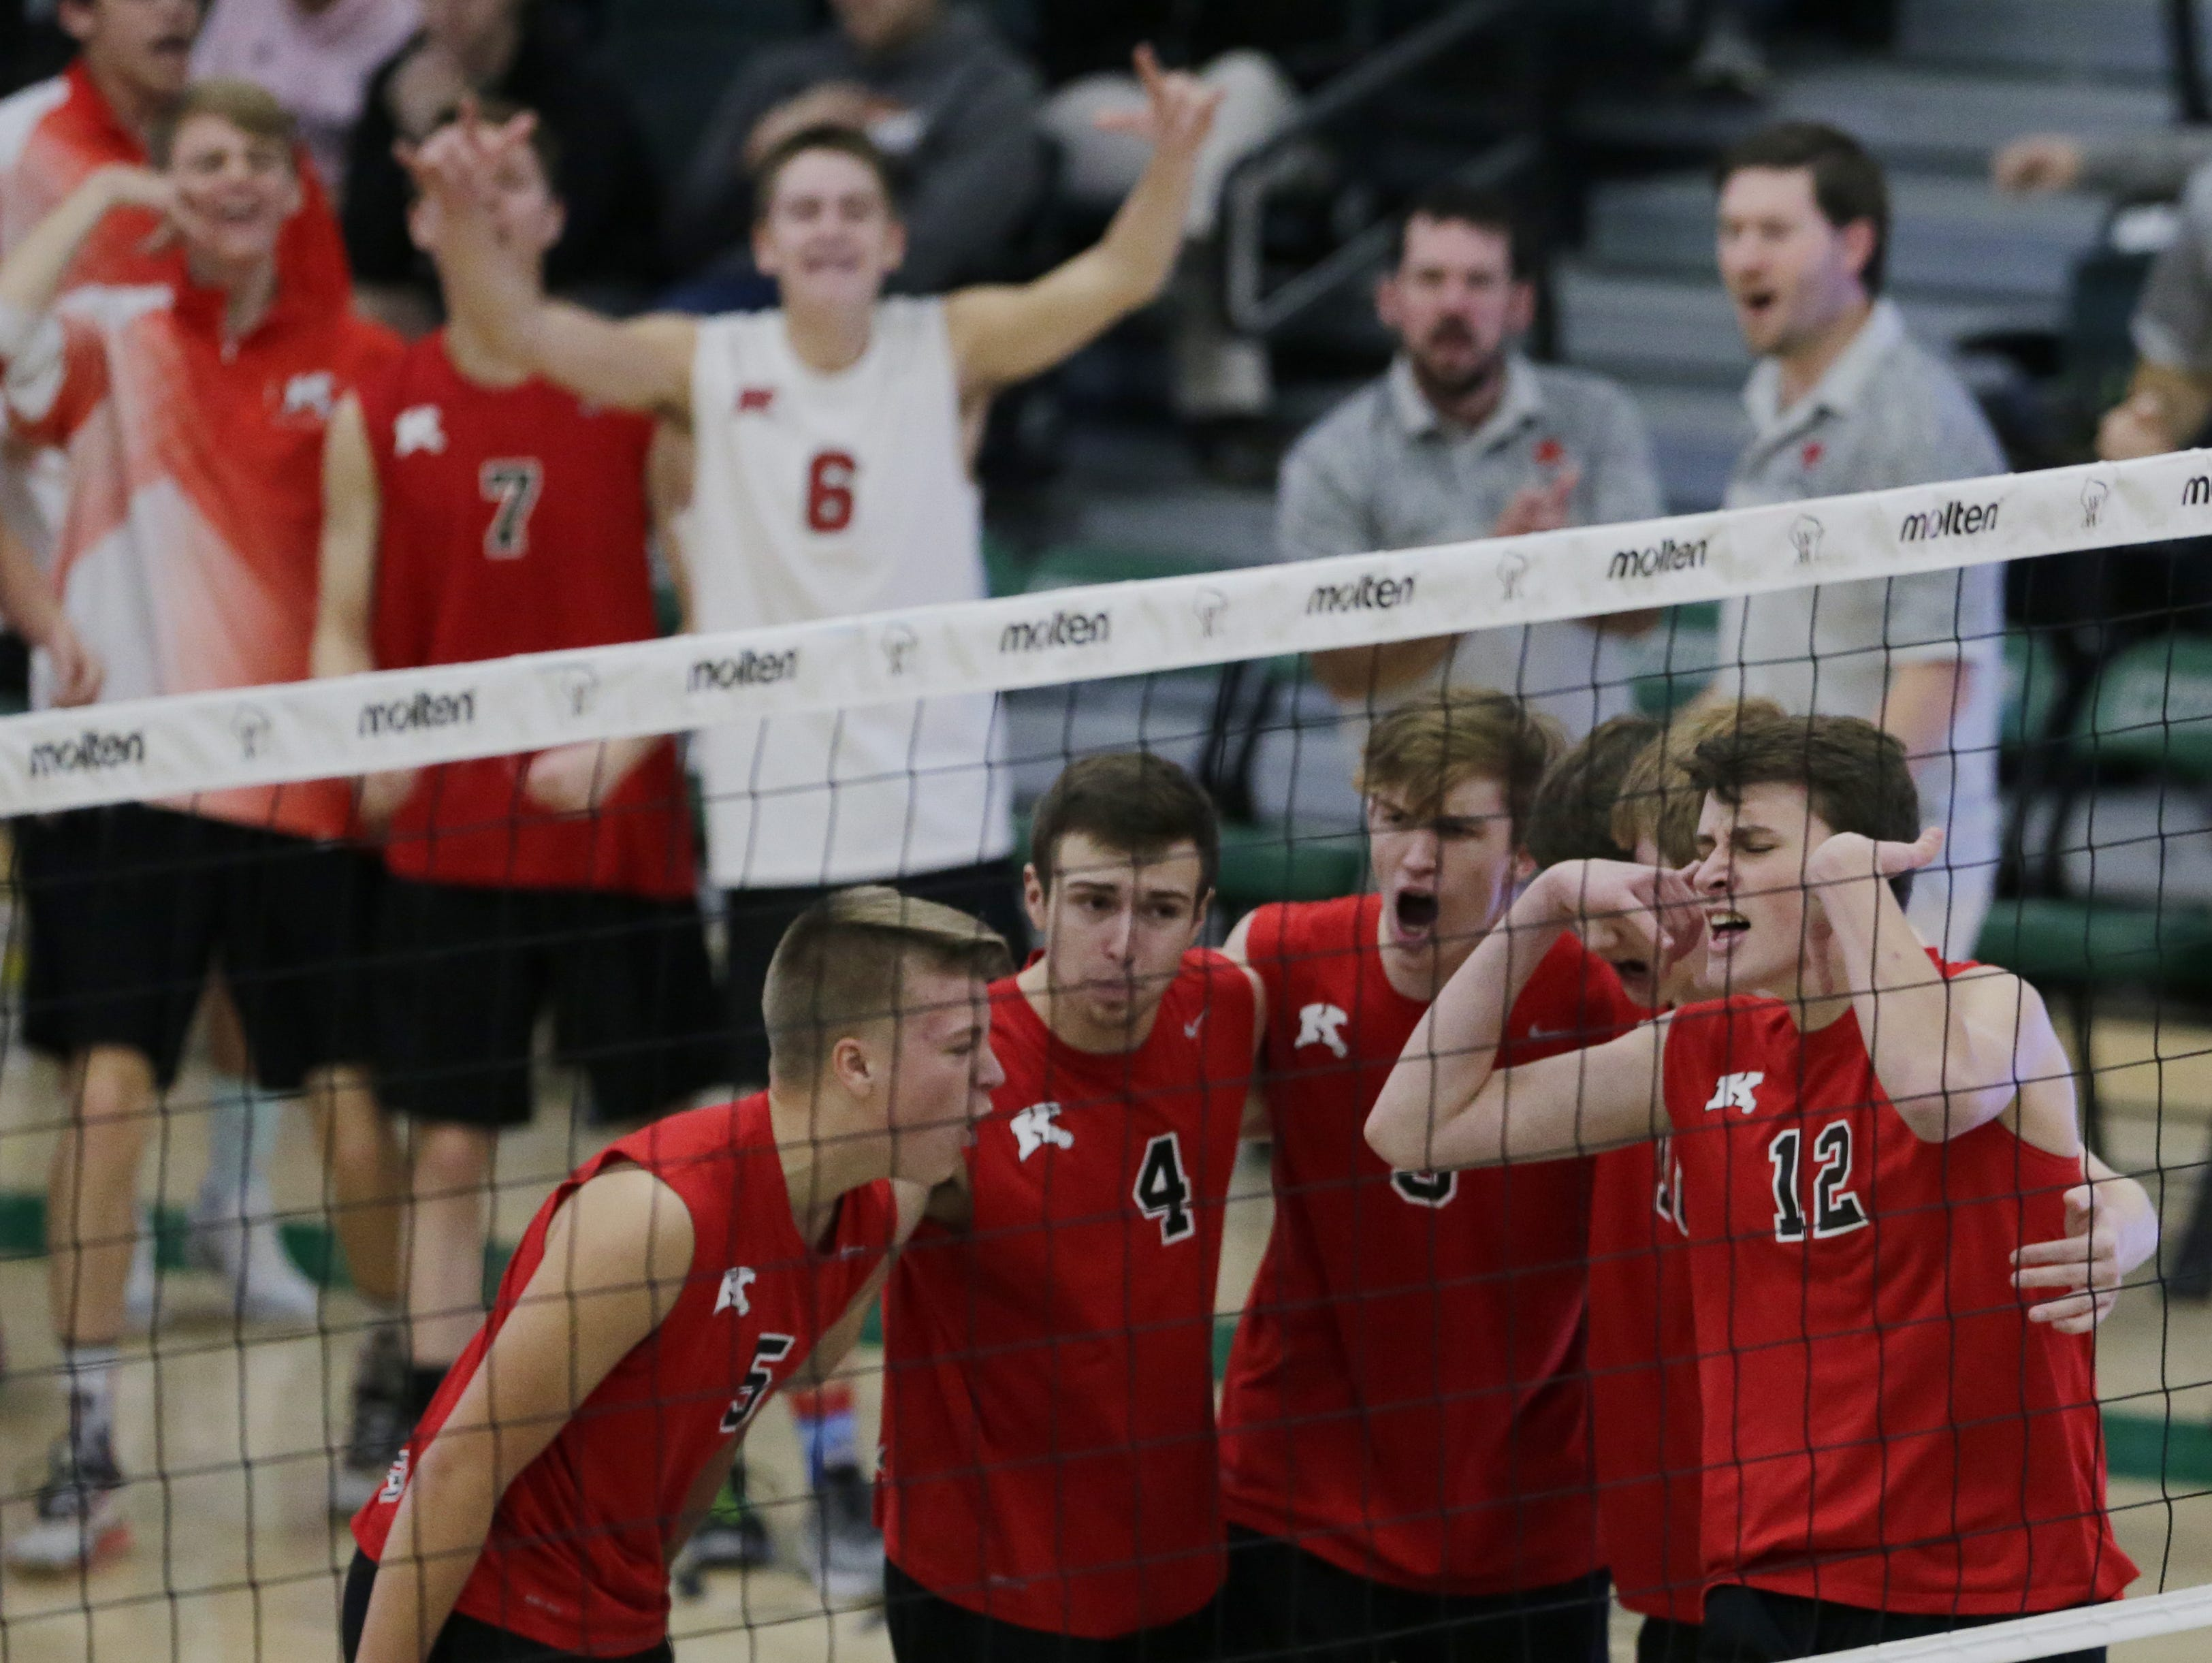 Kimberly's Parker Hietpas reacts to a point during their game.  Kimberly Papermakers played Kenosha Indian Trail Hawks in Division 1 WIAA boys volleyball playoff semi-final, Saturday, November 10, 2018 at Wisconsin Lutheran College in Milwaukee, Wis. Joe Sienkiewicz/USA Today NETWORK-Wisconsin